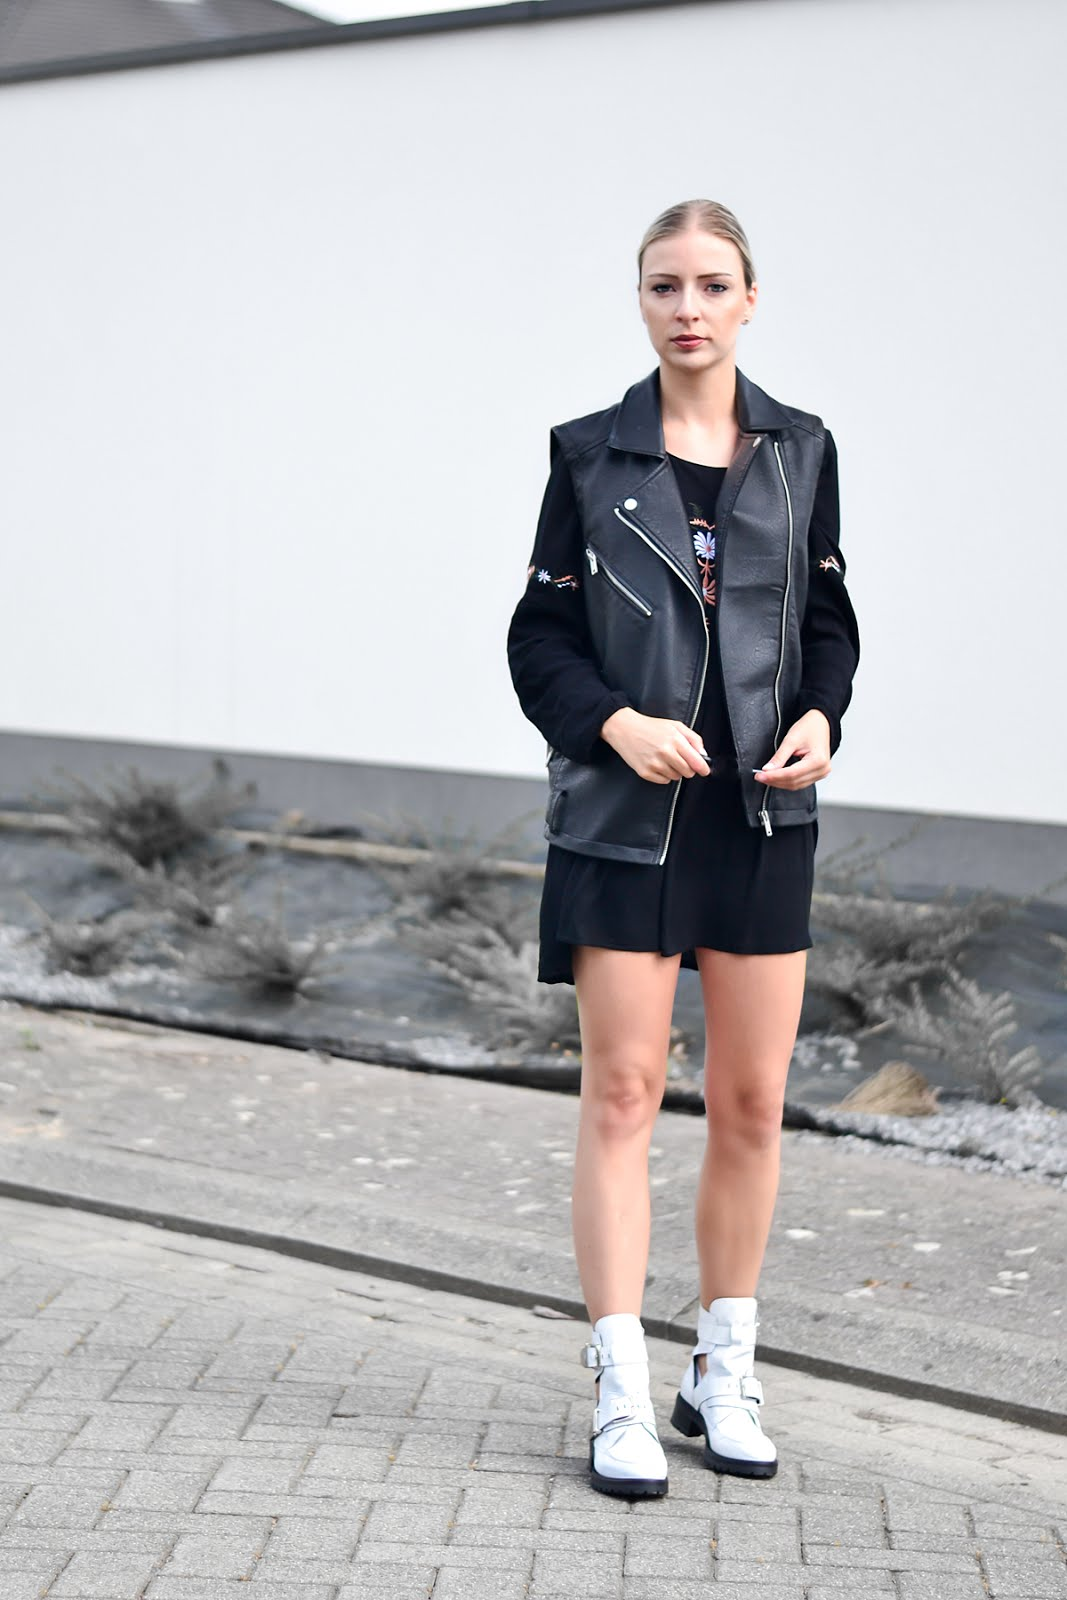 Festival look by Sacha shoes, Embroidered skater dress from moth clothing, white buckle boots, Jbc biker jacket